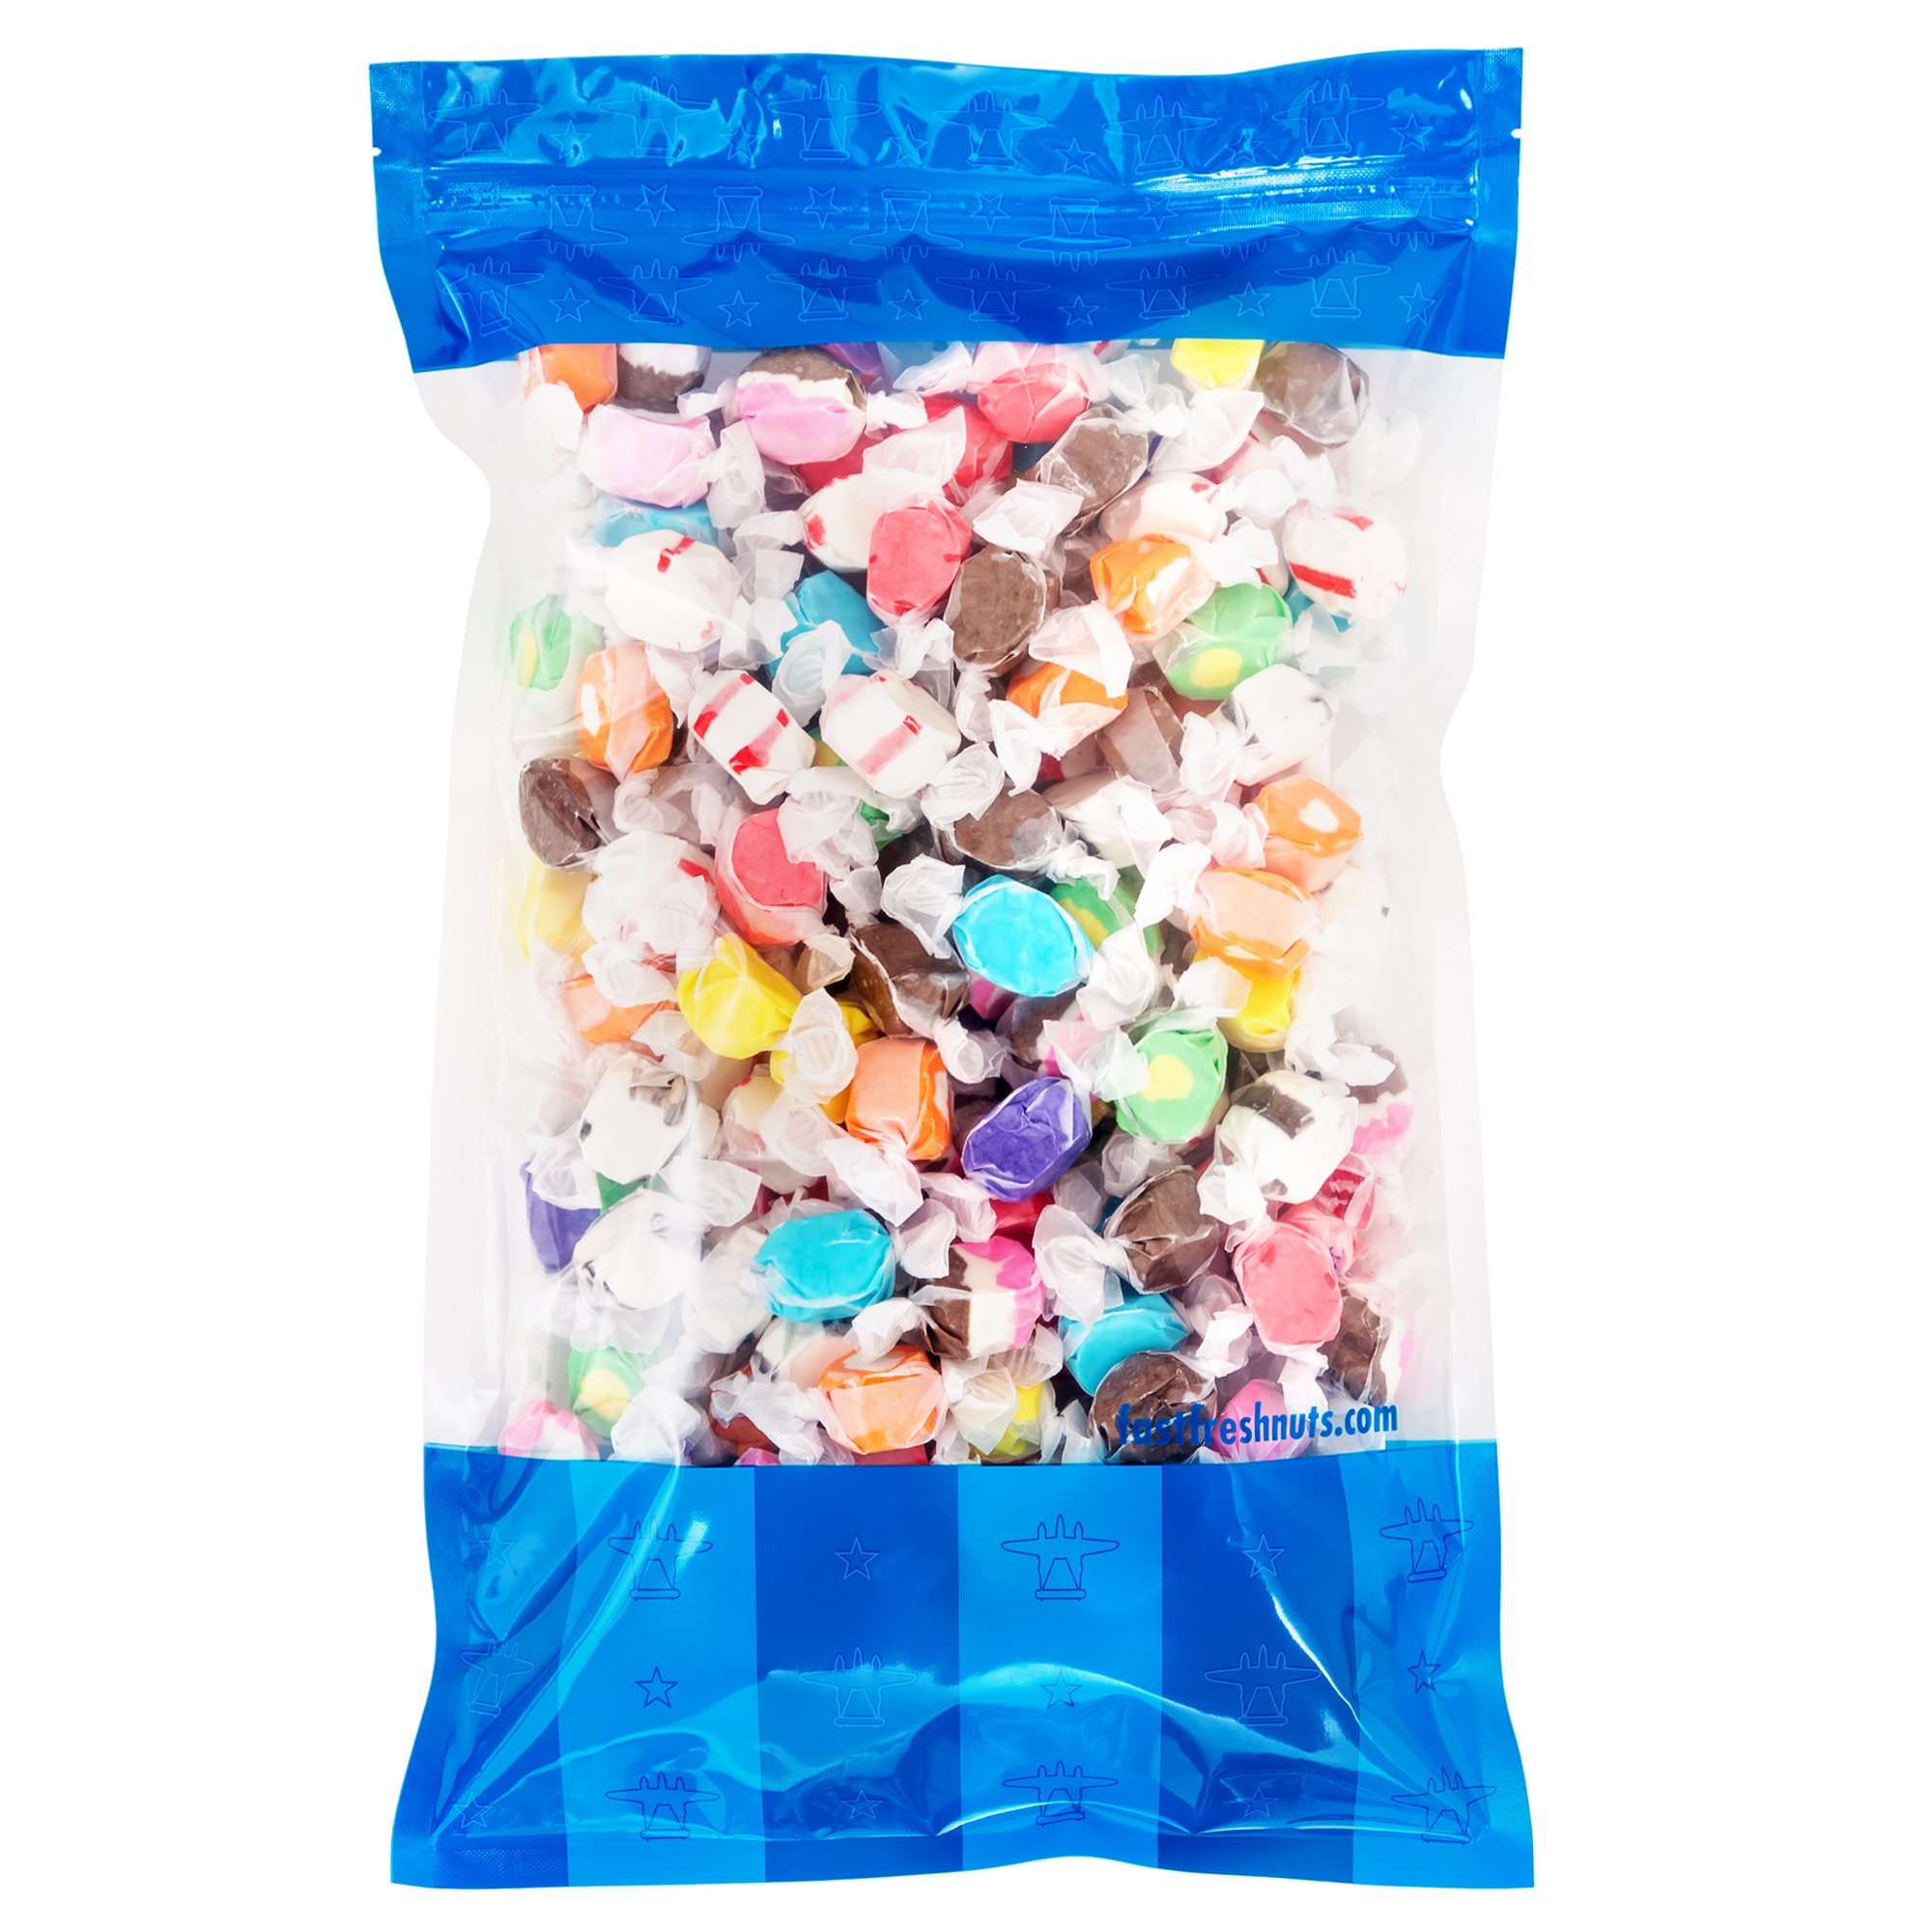 Bulk Salt Water Taffy - 5 lbs in a Resealable Bomber Bag - Great for Candy Bowls - Wholesale - Vending Machines - Party Size - Holiday Candy !!! by Fast Fresh Nuts